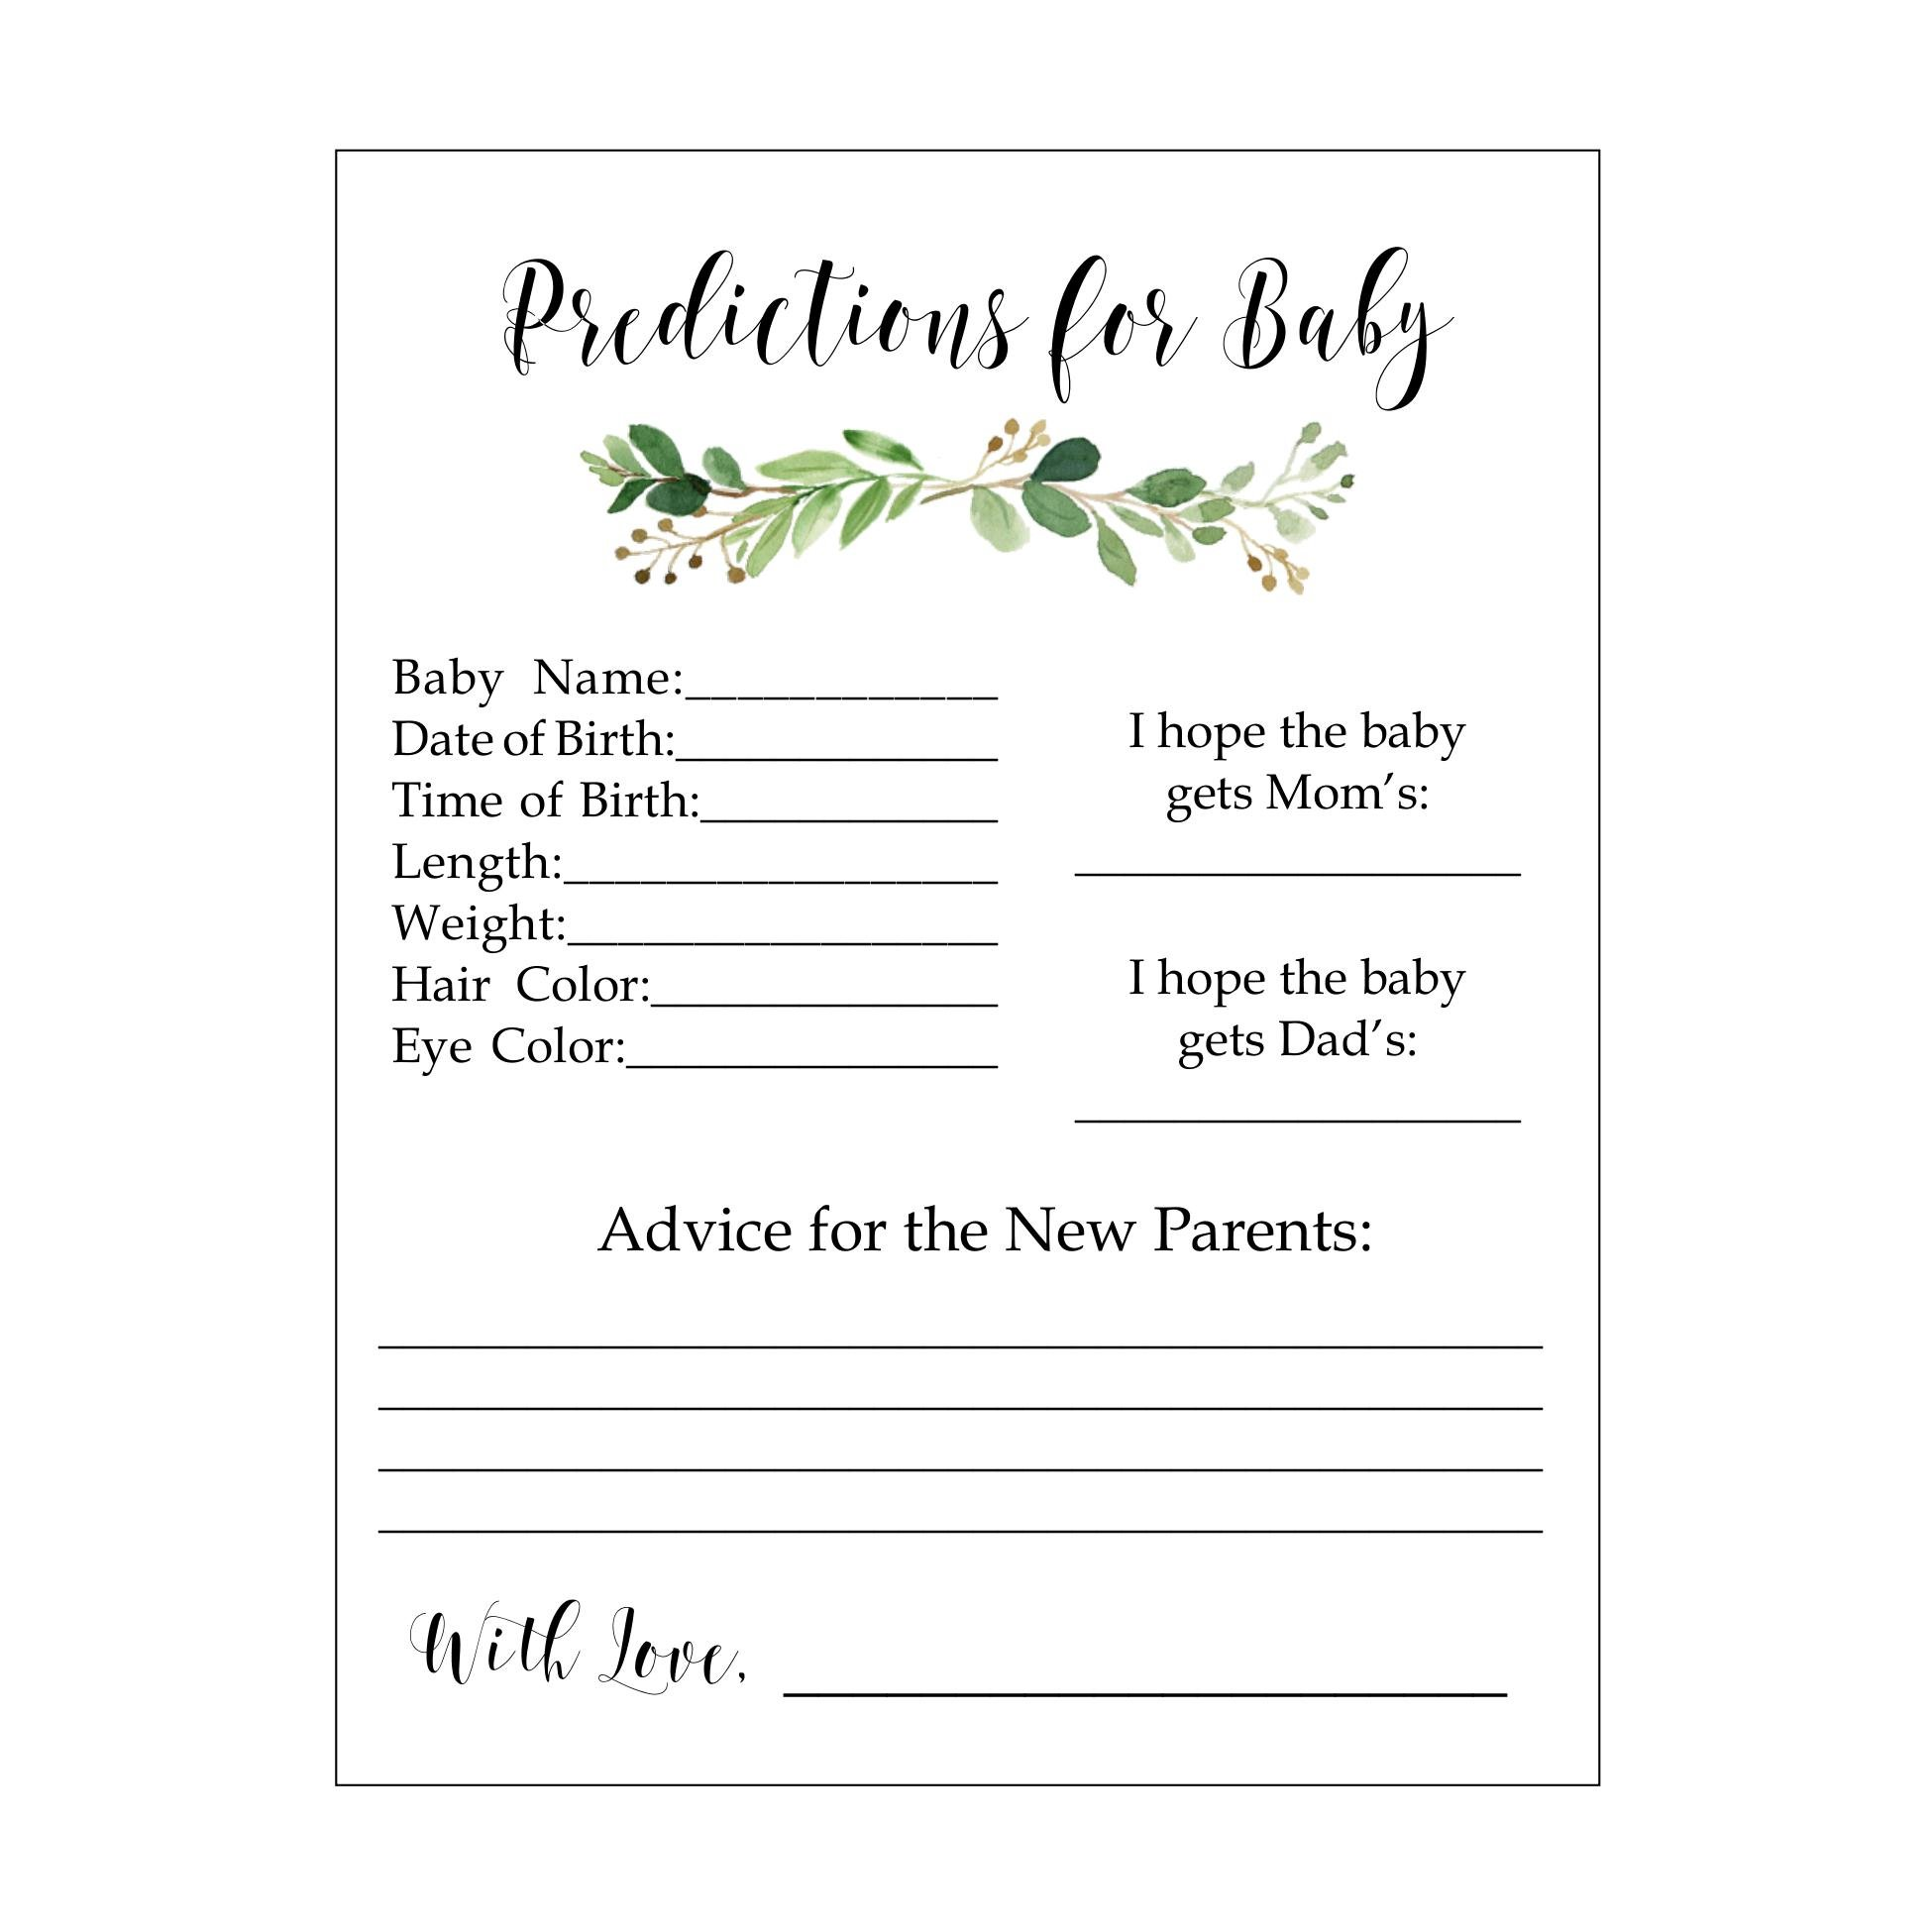 Baby Predictions Baby Shower Game for Boy or Girl, Fun Baby Shower Game, Set of 20, Baby Shower Guest Book Alternative, Baby Shower Advice Cards, Predictions, Green Watercolor Foliage Floral Swags